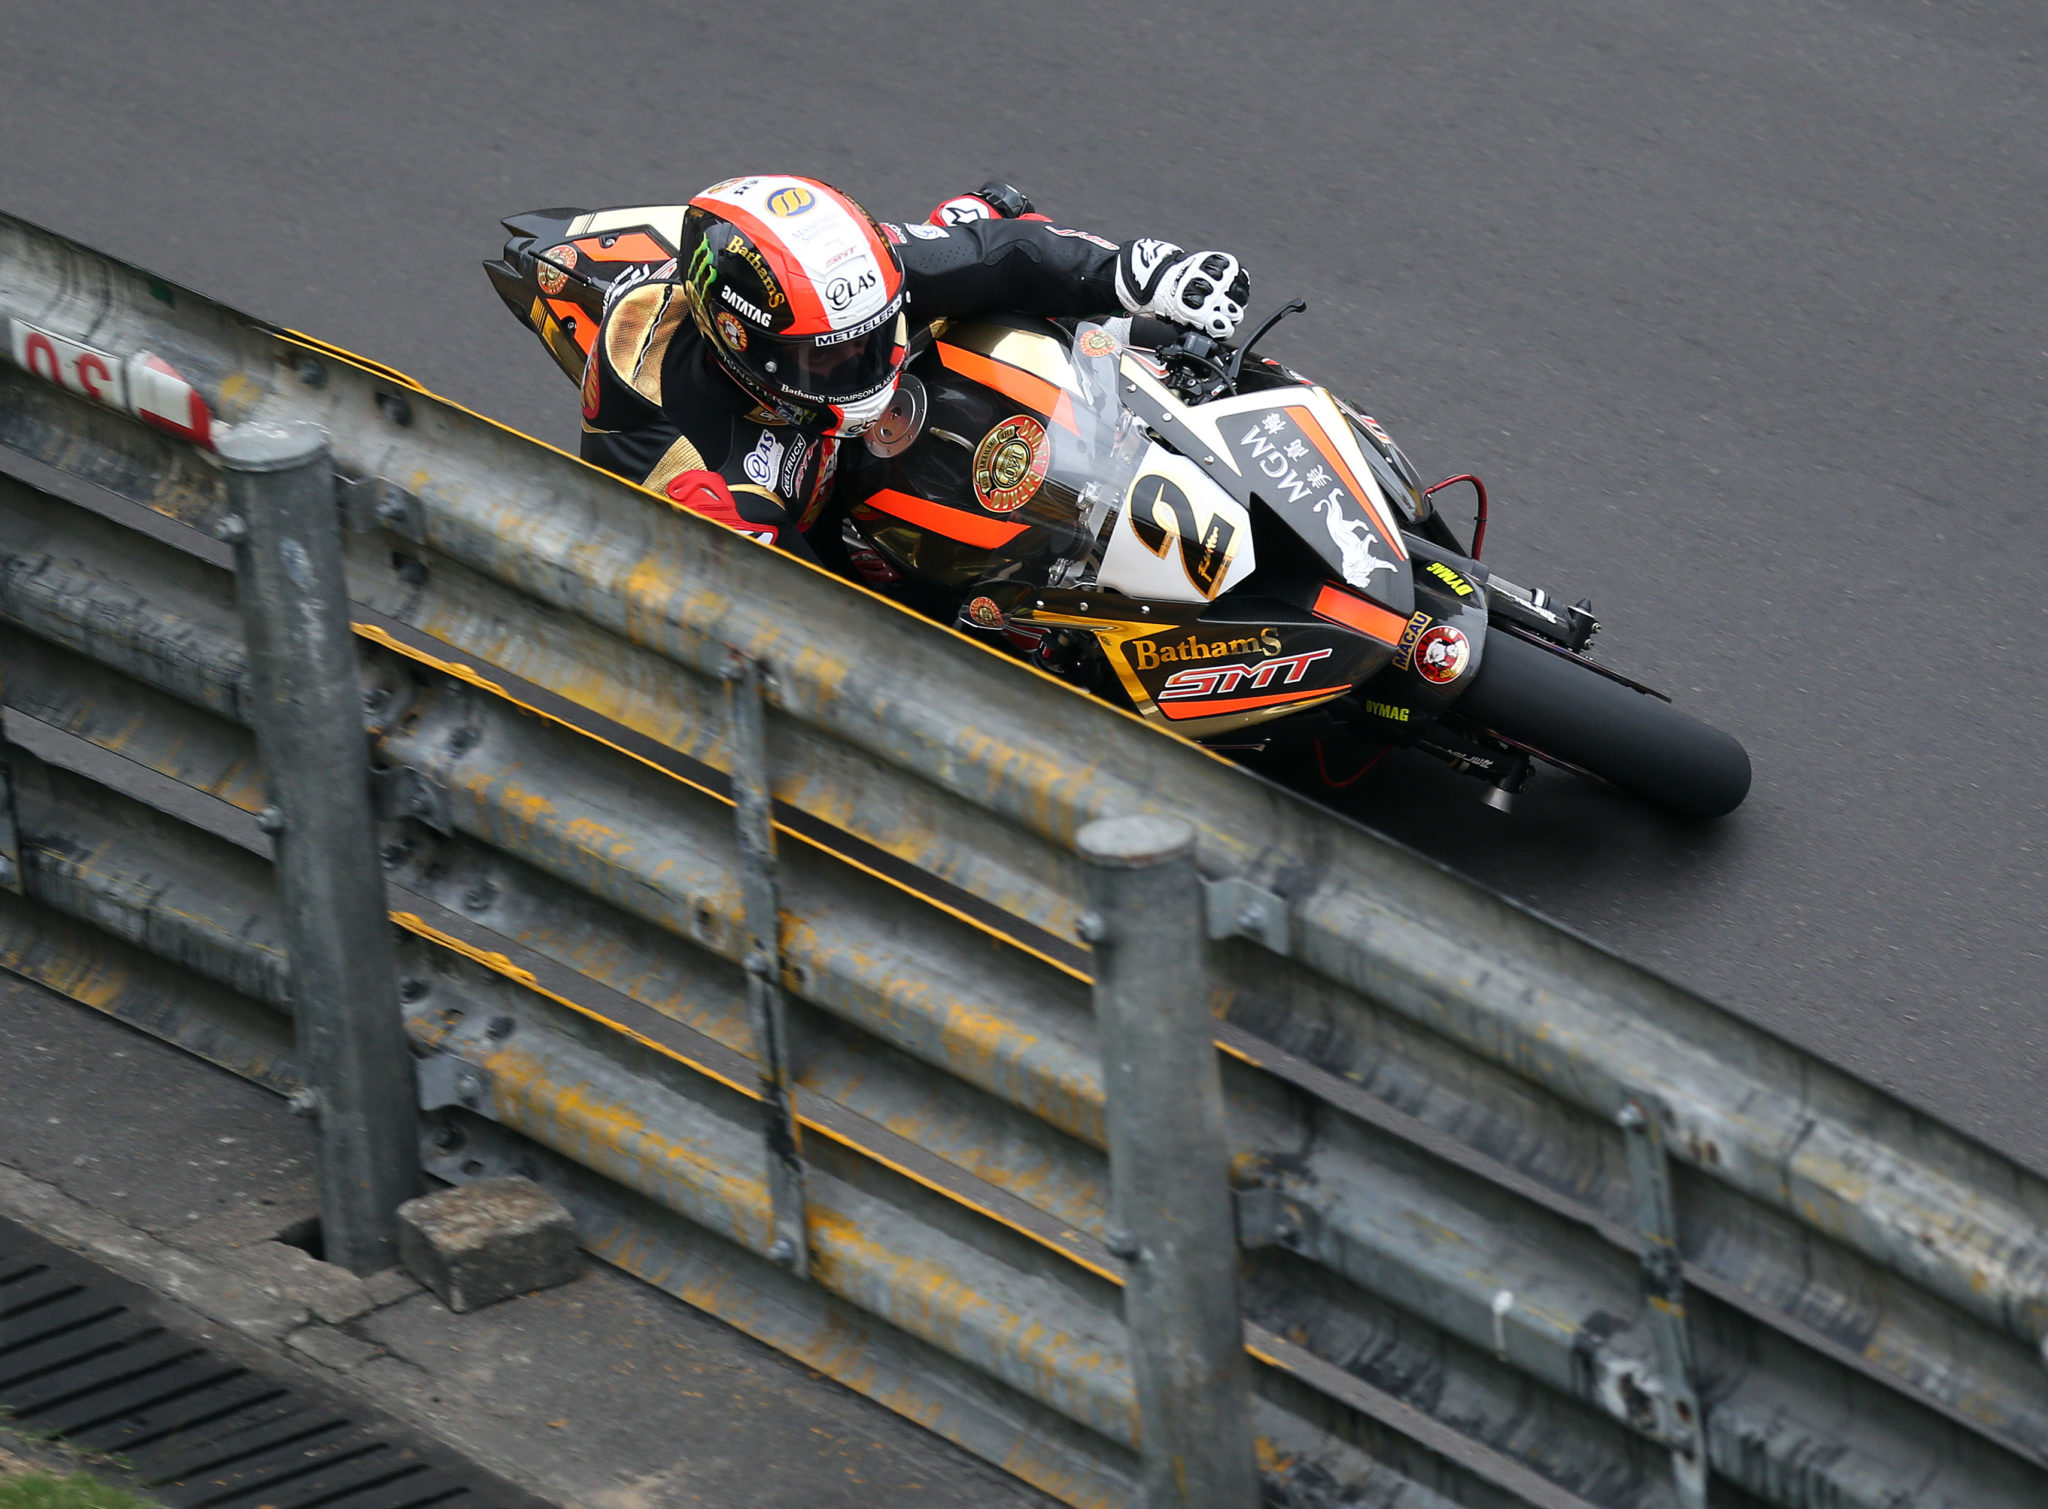 PACEMAKER, BELFAST, 16/11/2017: Michael Rutter (SMT/Bathams BMW) in action at Fisherman's Bend during the first practice session at the 2017 Macau Grand Prix.